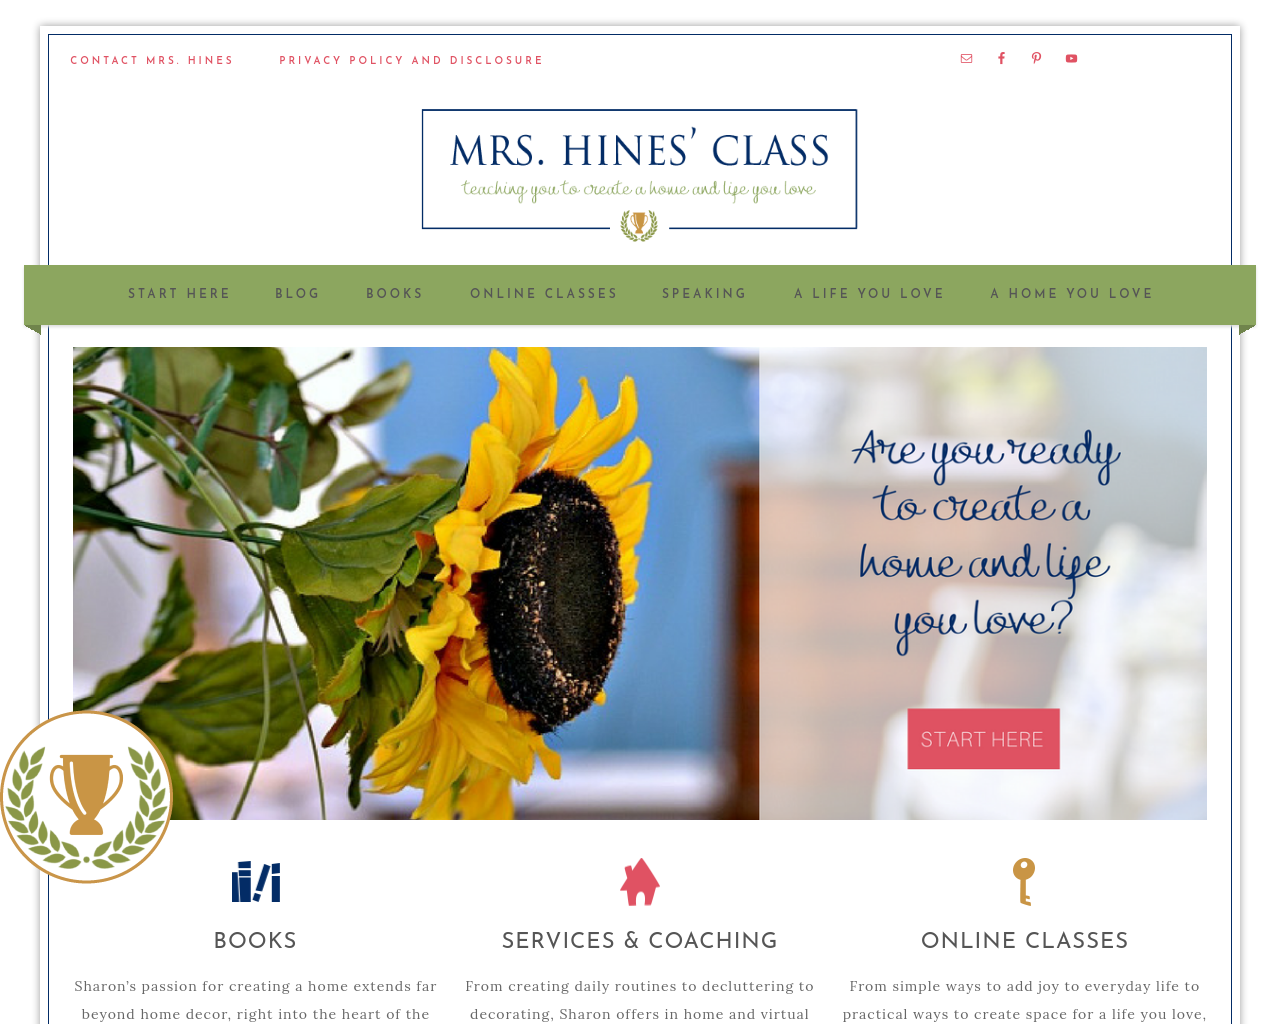 Mrs.-Hines-Class-Advertising-Reviews-Pricing